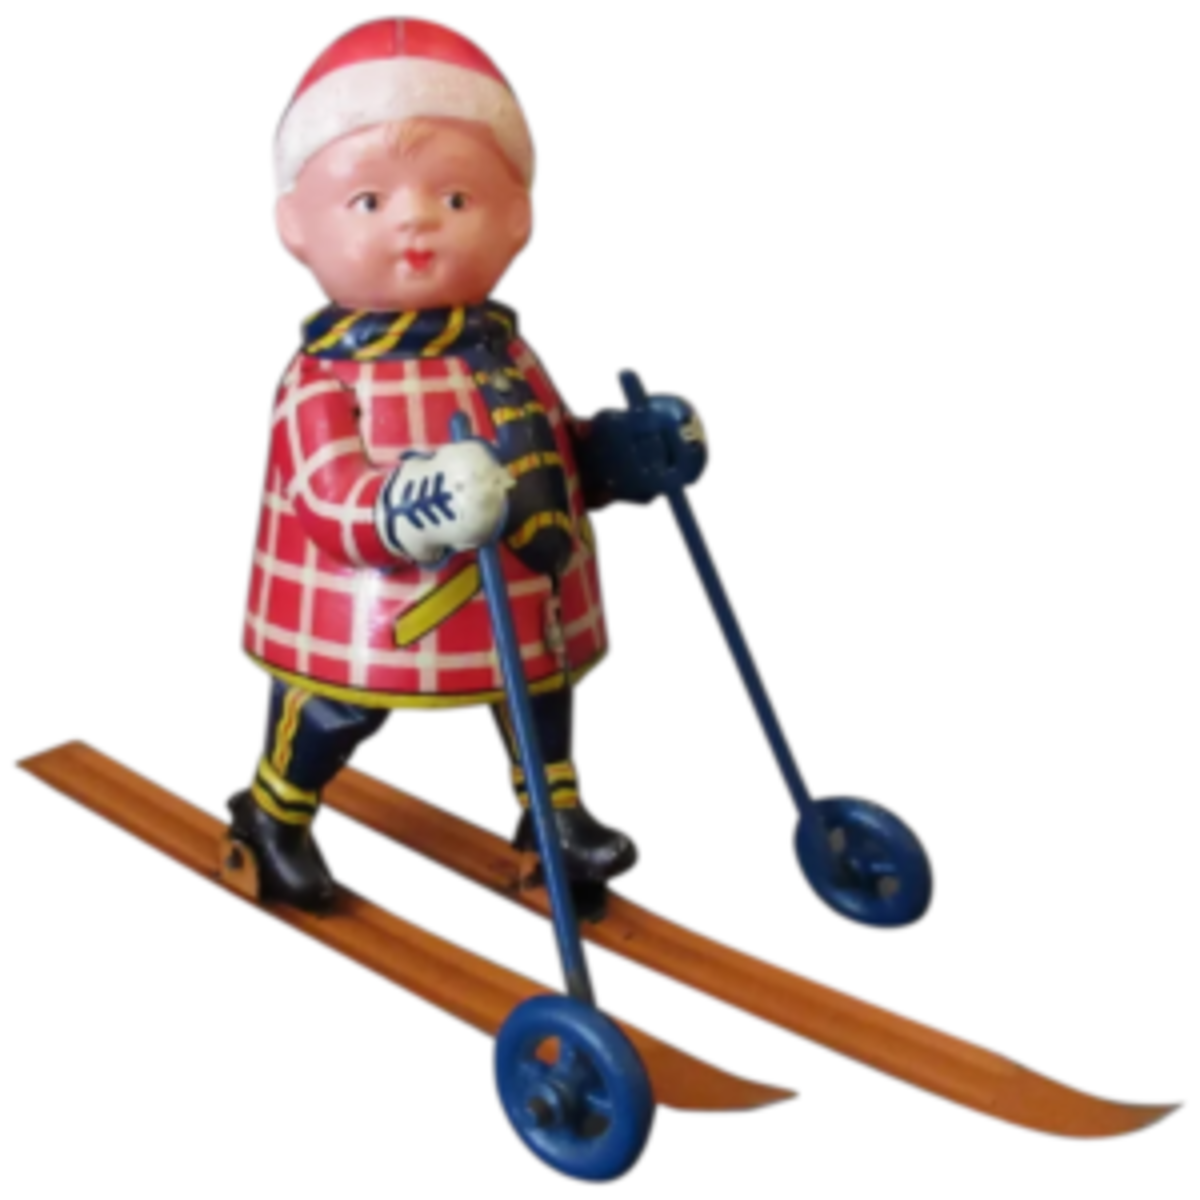 A fun antique celluloid and tin Occupied Japan wind-up toy of a young cross country skier. The mechanism is housed in the body and when it is wound by the attached key, the skier's legs move back and forth moving the skis in a realistic motion. The arms are stationary but there are wheel on the ski poles to facilitate movement; $295. Courtesy of Ogee's Antiques: rubylane.com/shop/ogees